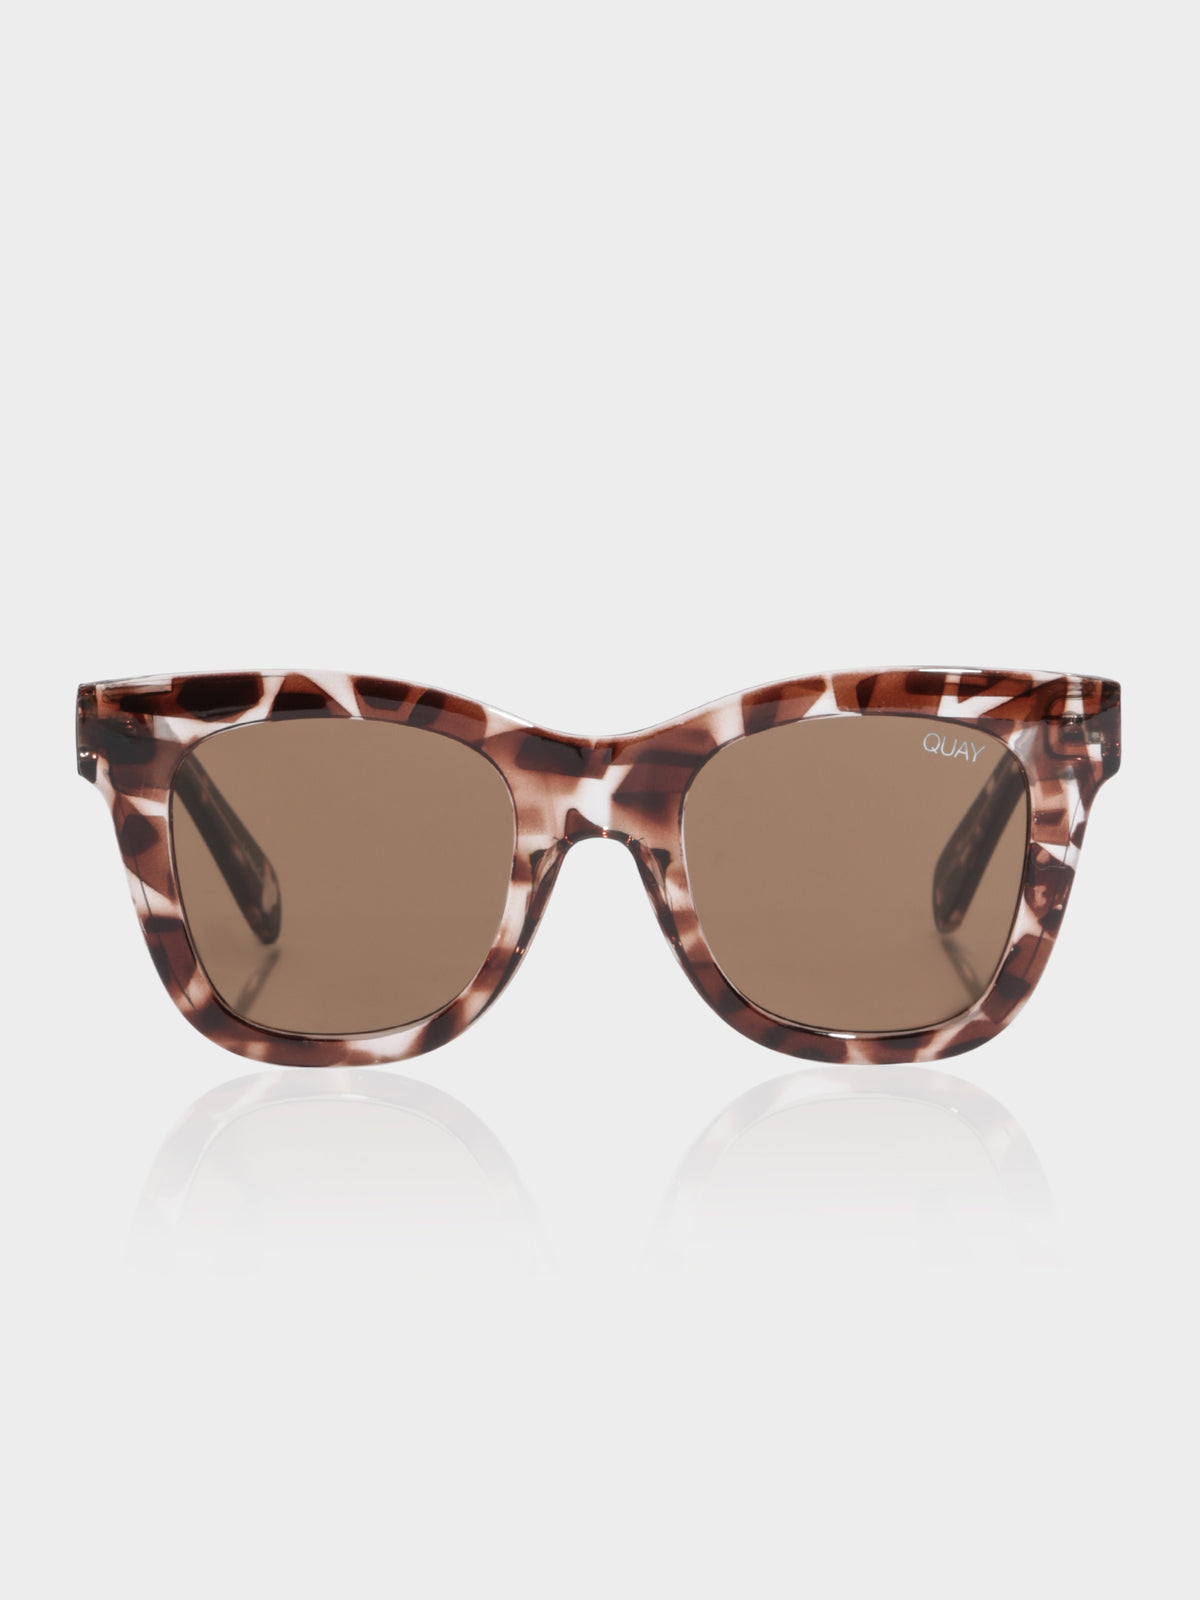 Womens After Hours Sunglasses in Tortoiseshell Finish with Brown Lenses